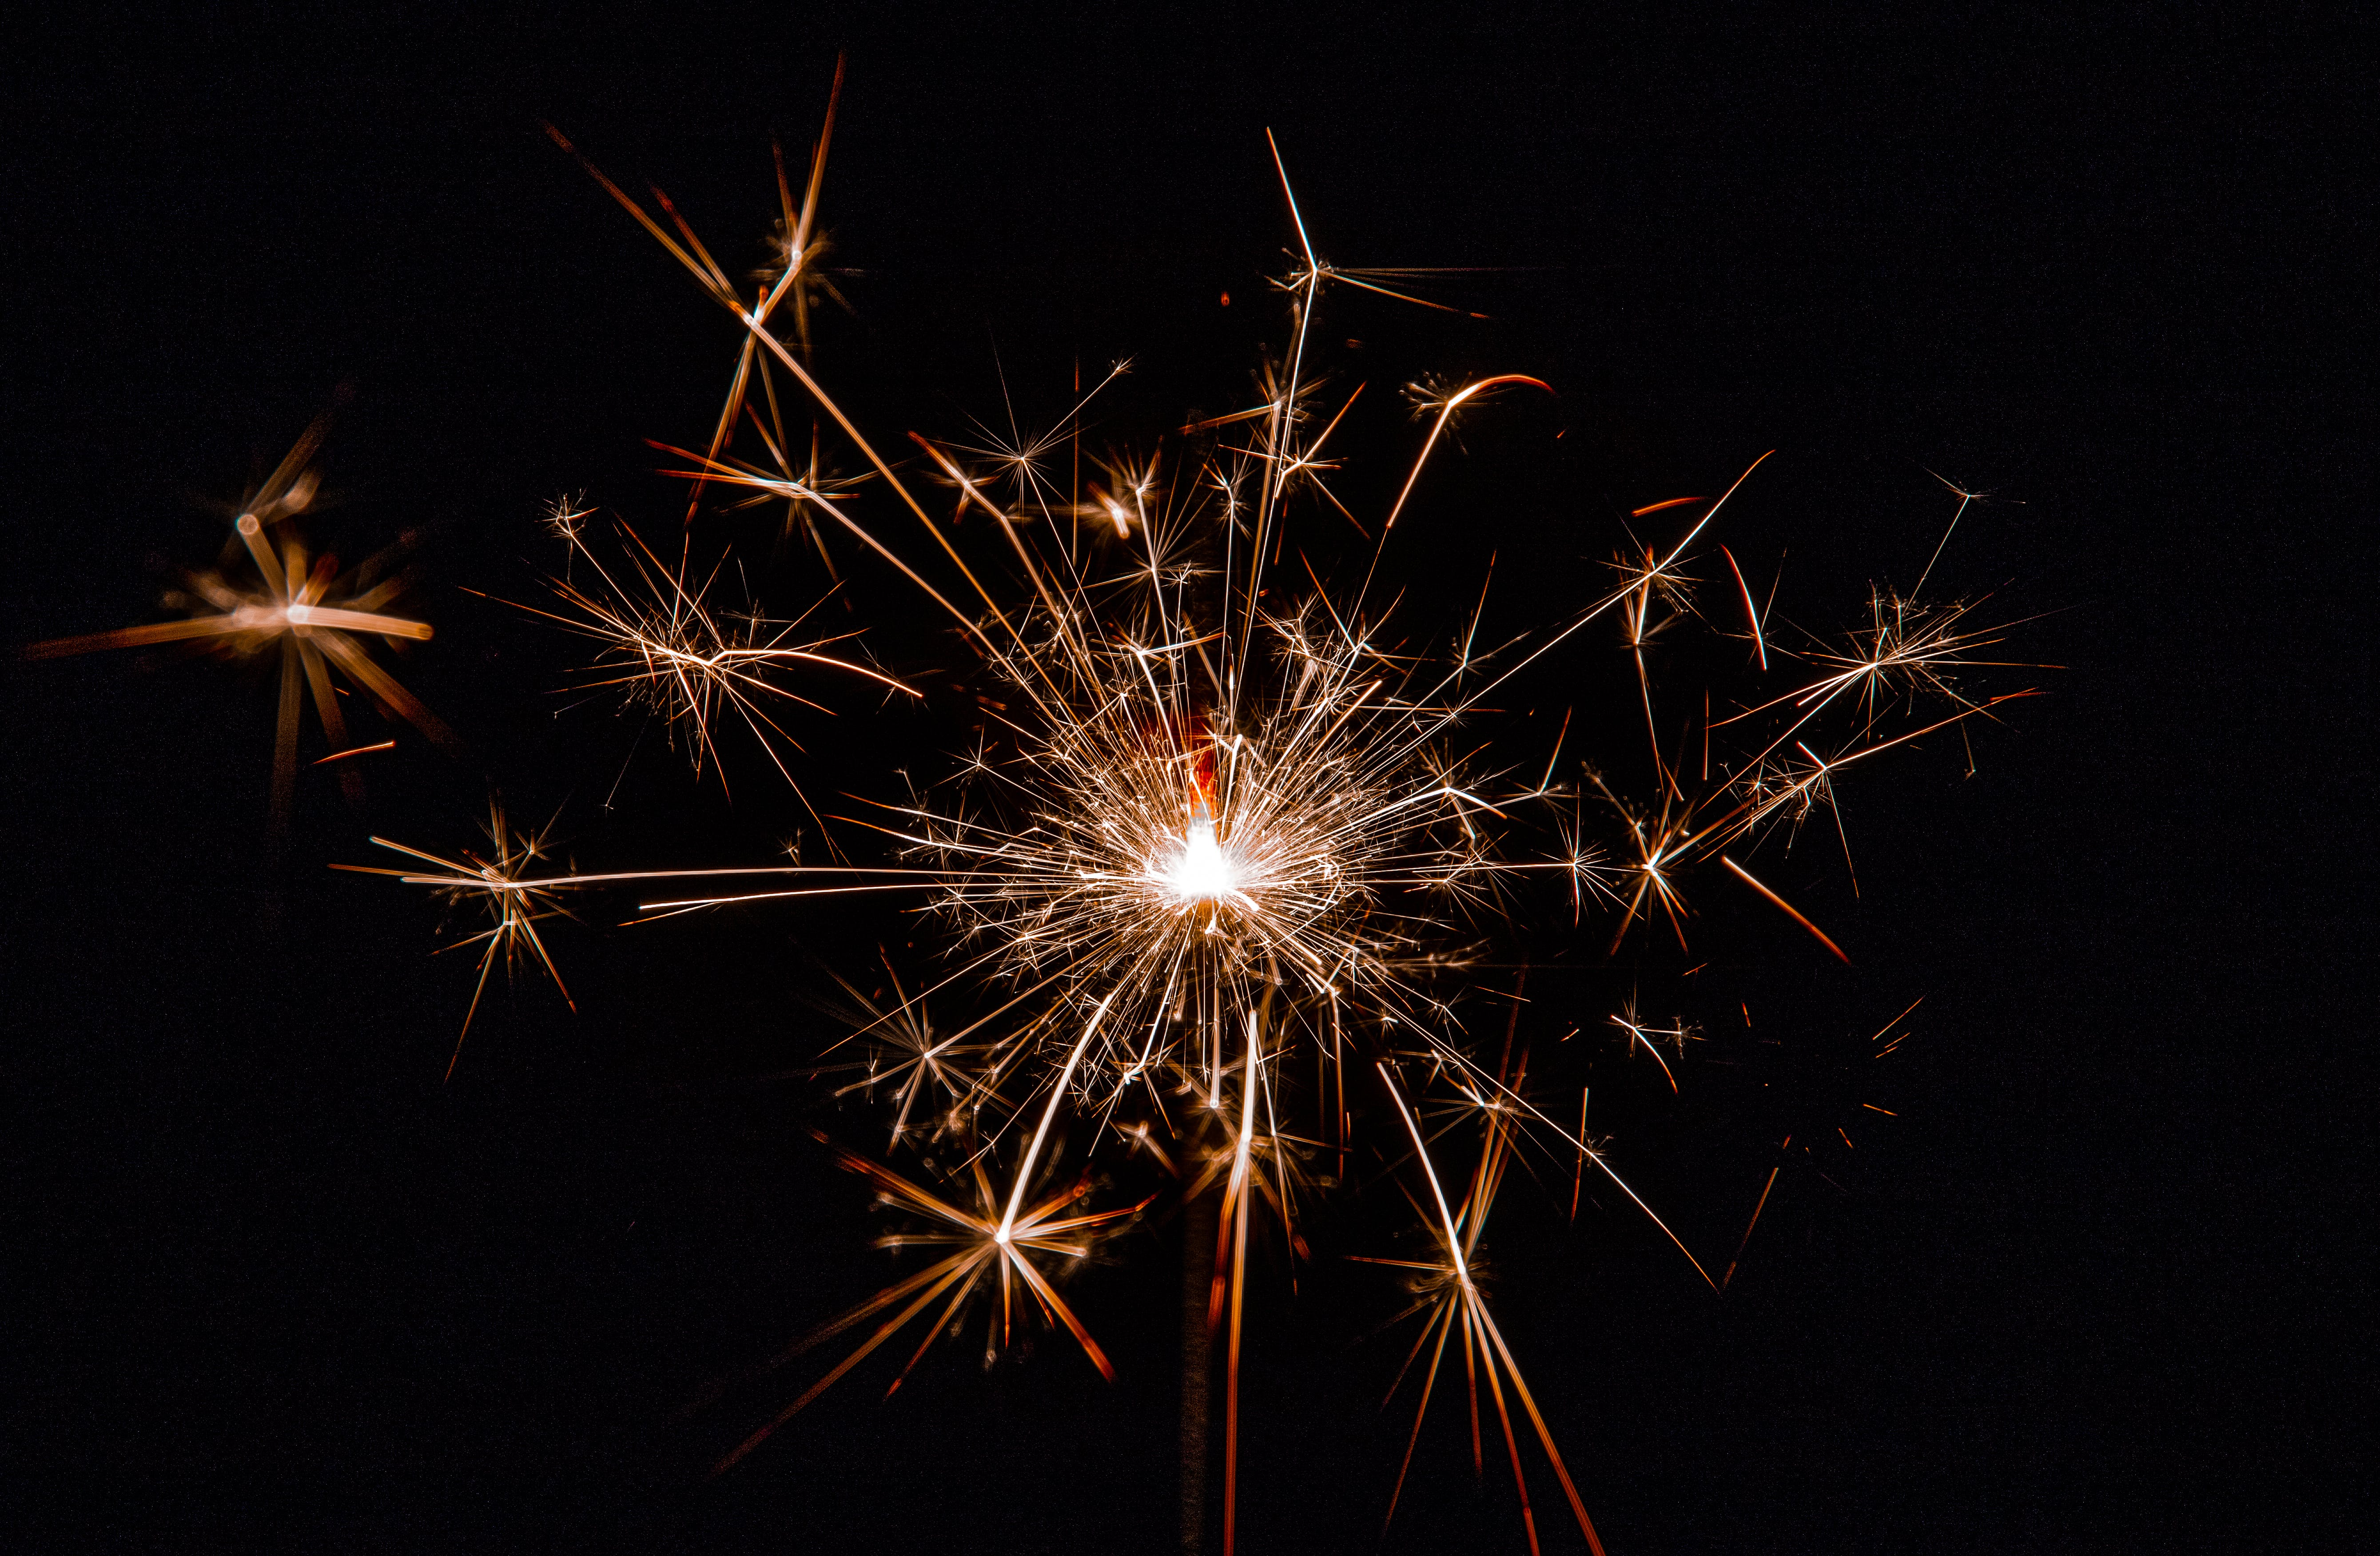 Low Light Photography of Firecrackers